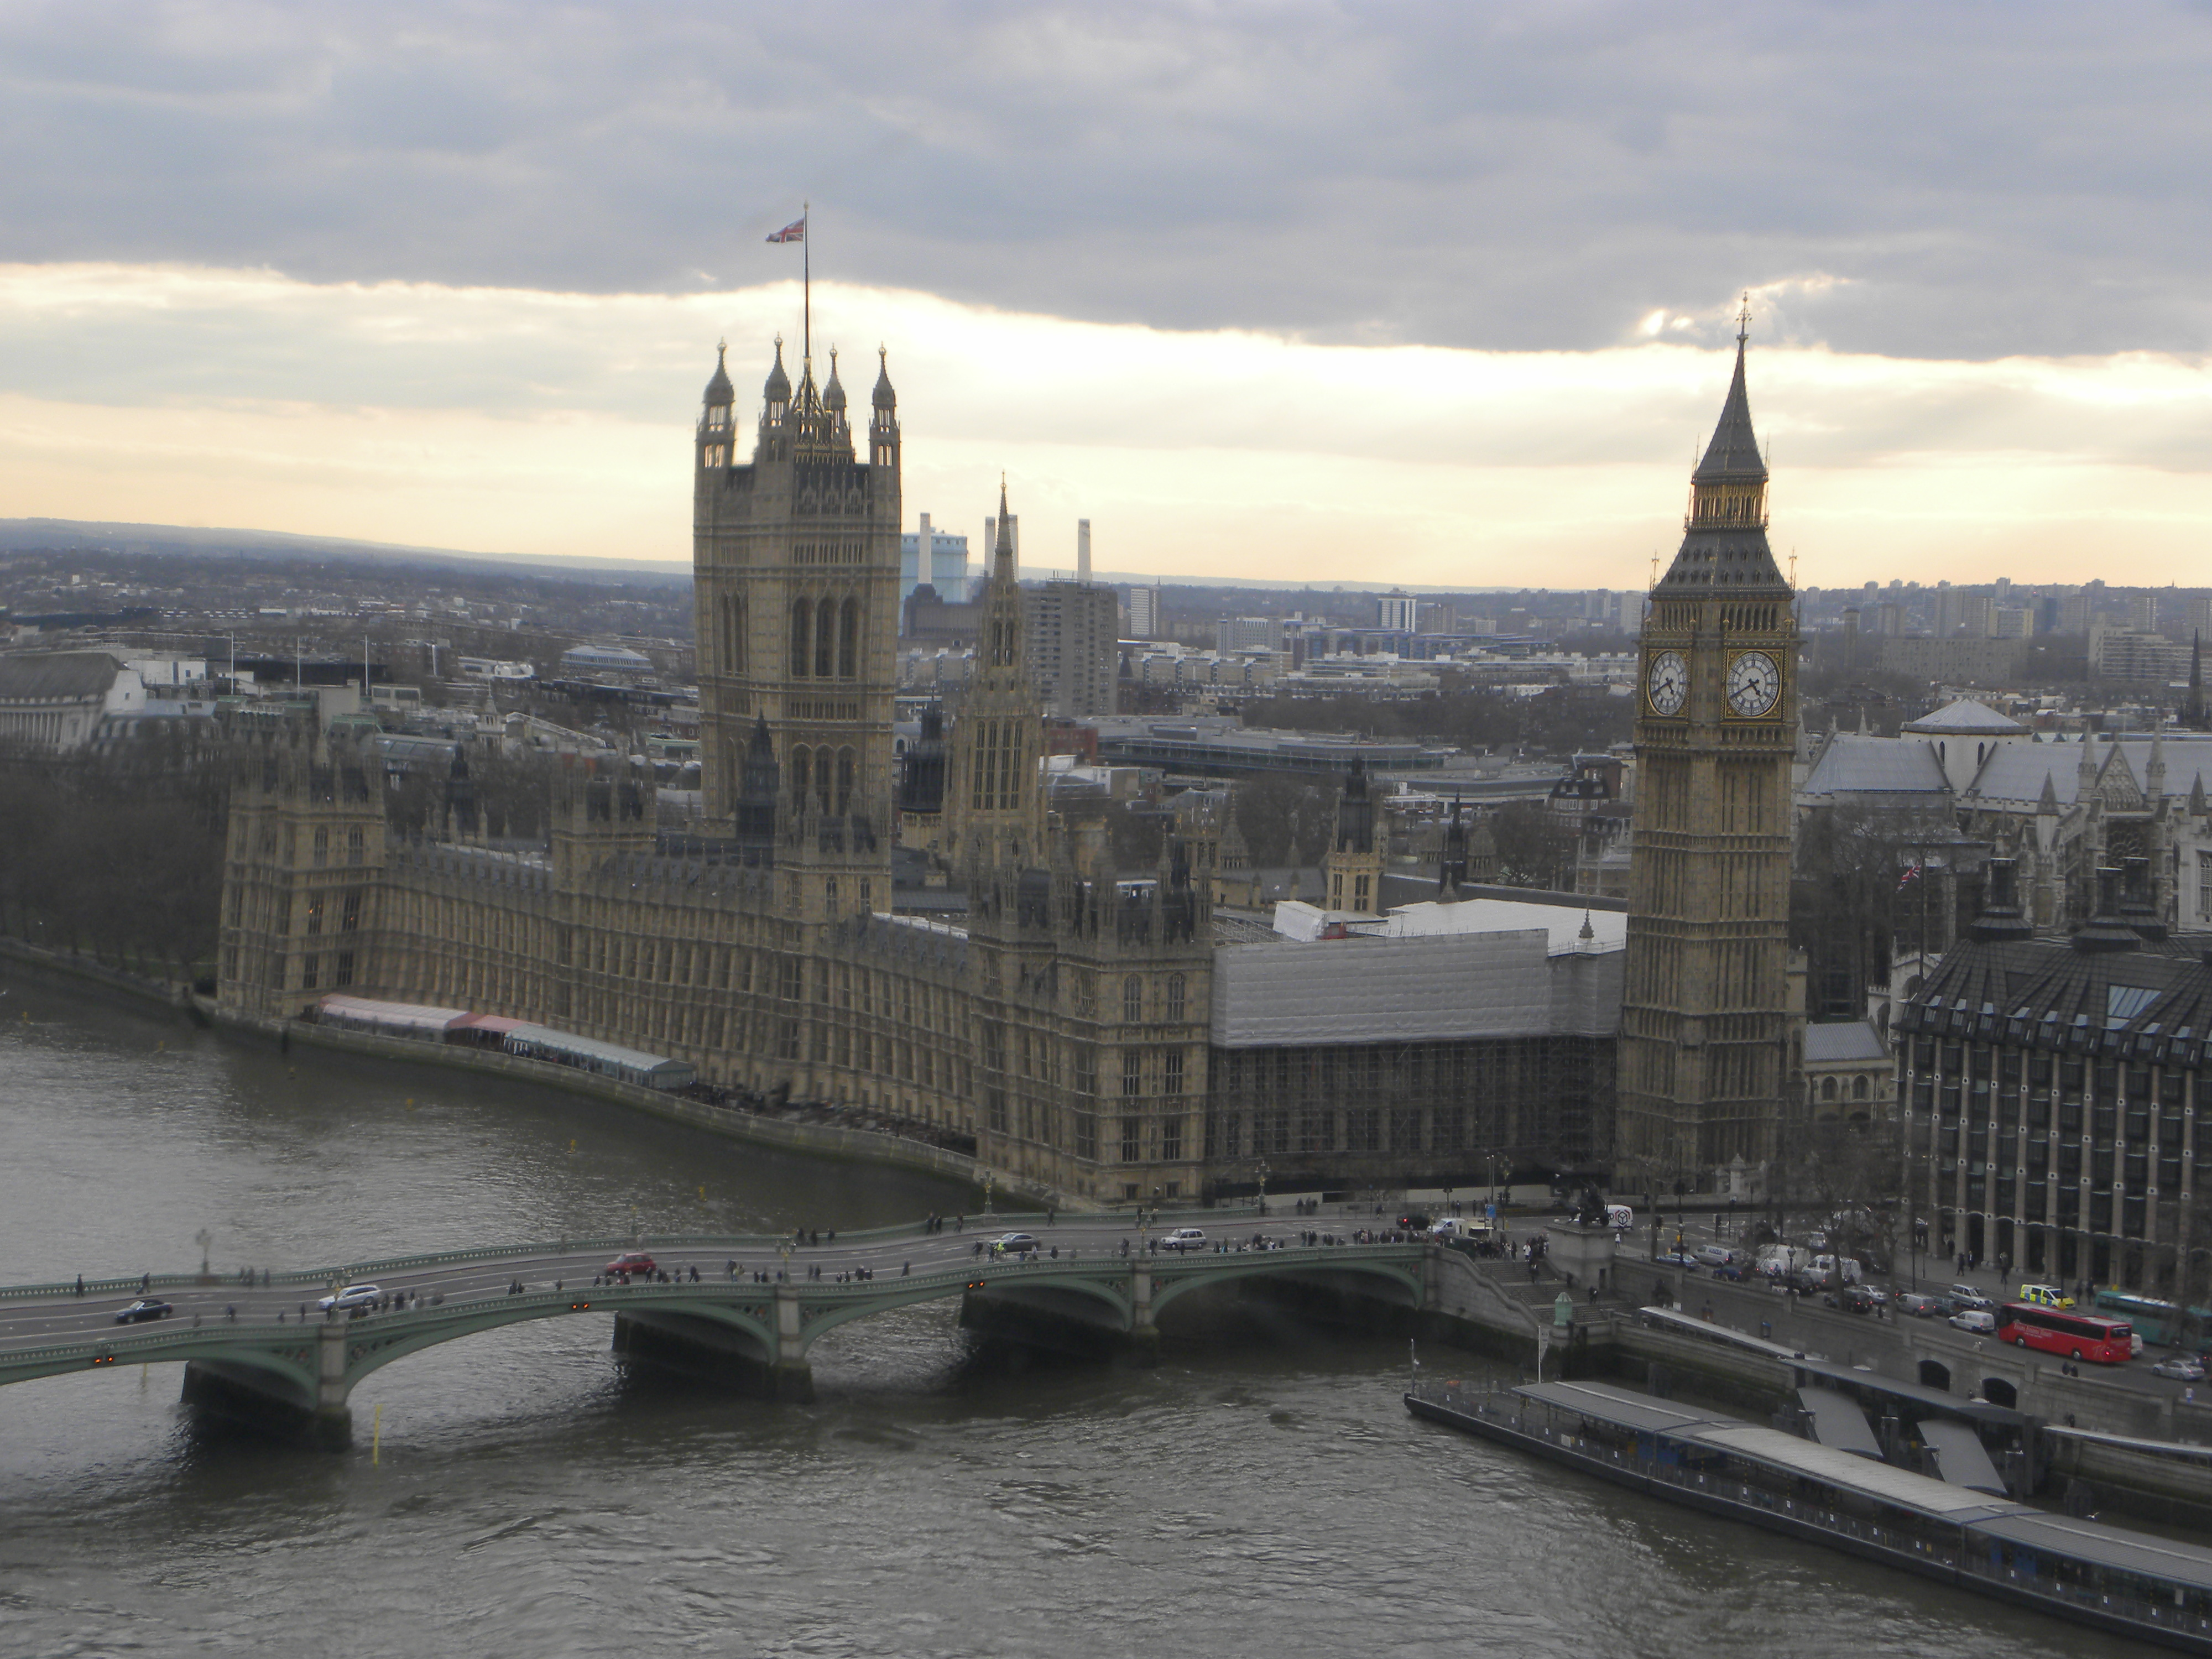 23 View of the Houses of Parliament from the London Eye